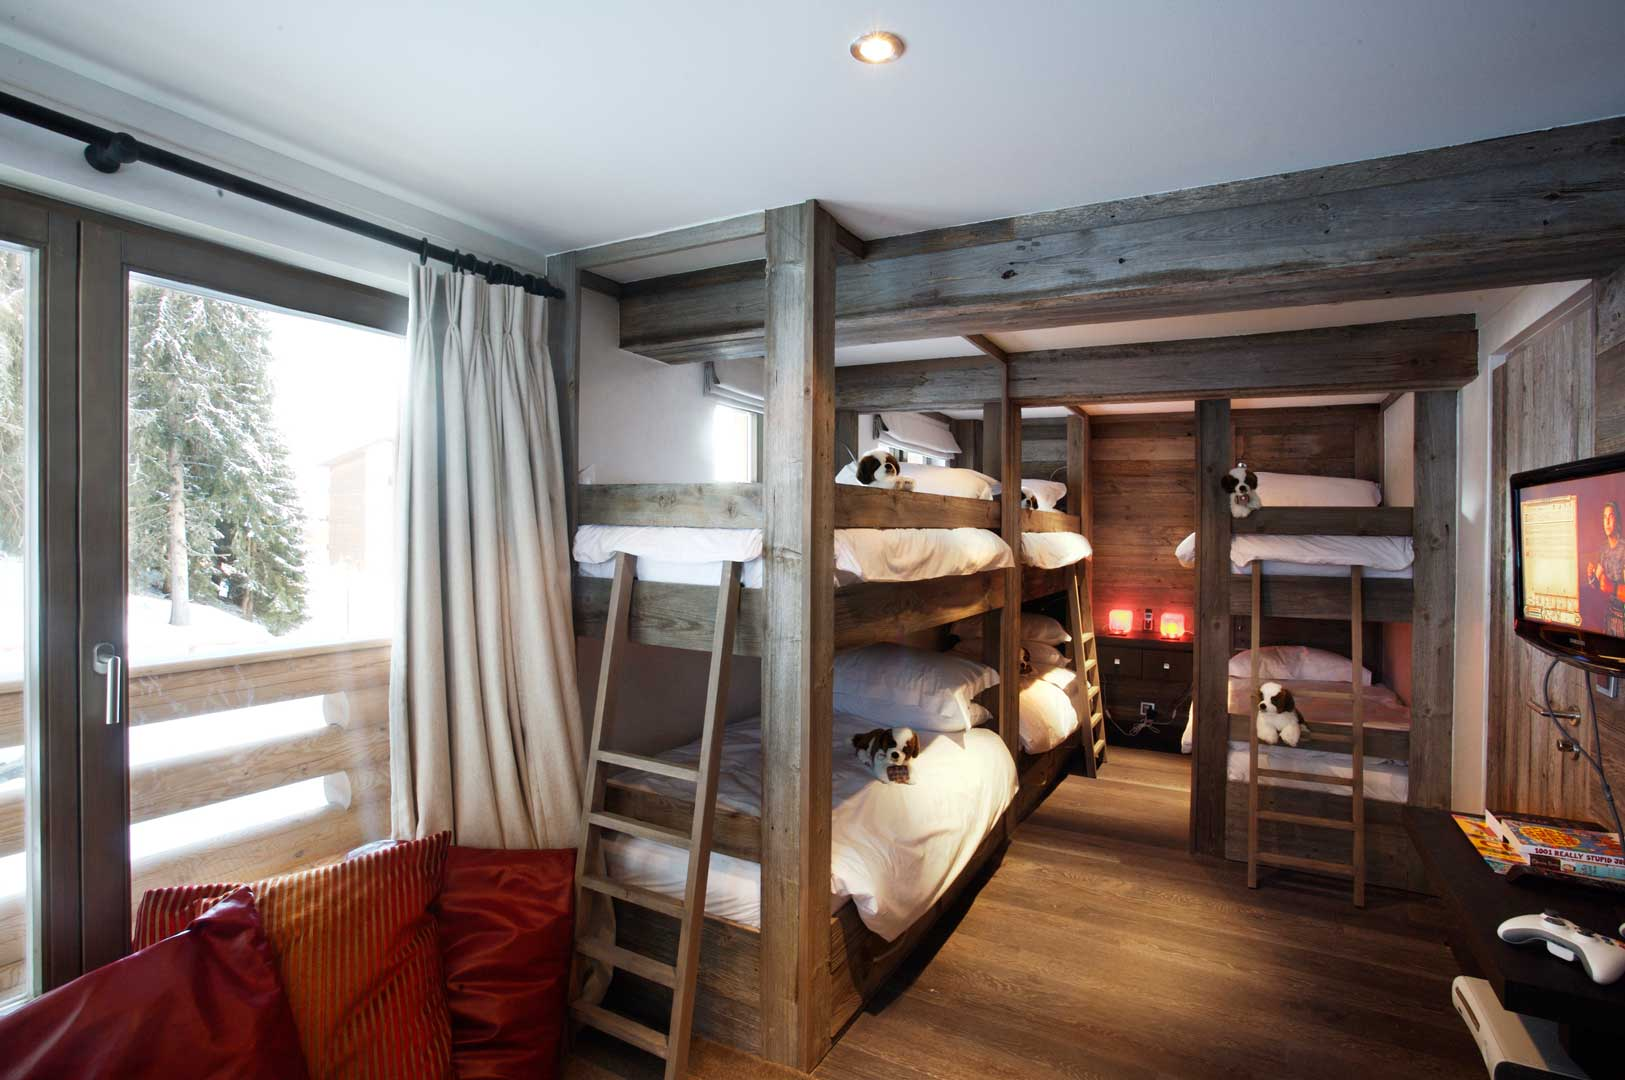 Chalet Homes The Lodge Verbier The Luxury Chalet 09 Myhouseidea